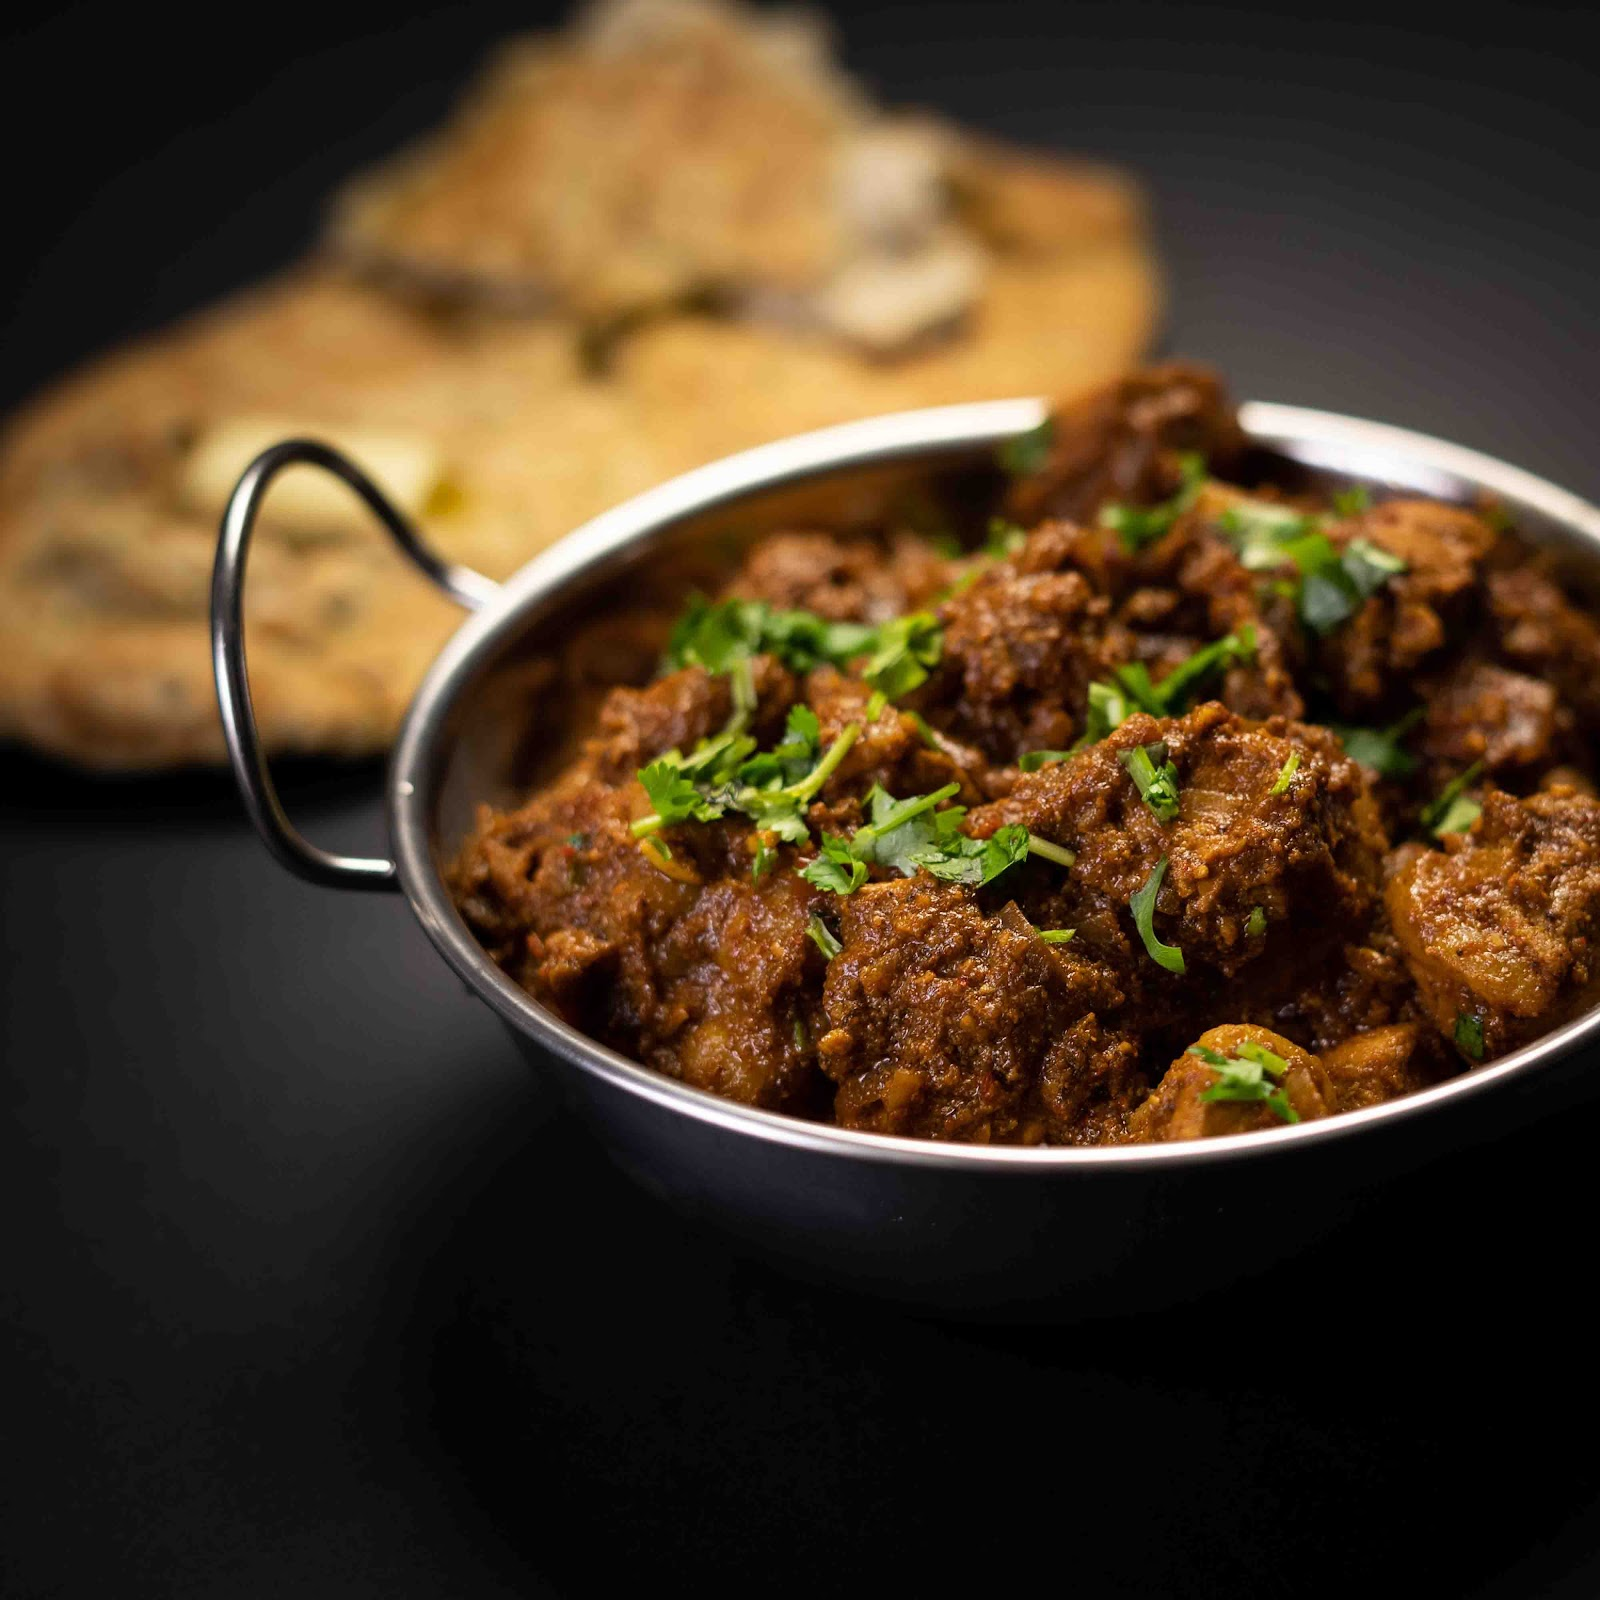 Rendang, one of the best curry in Indonesia